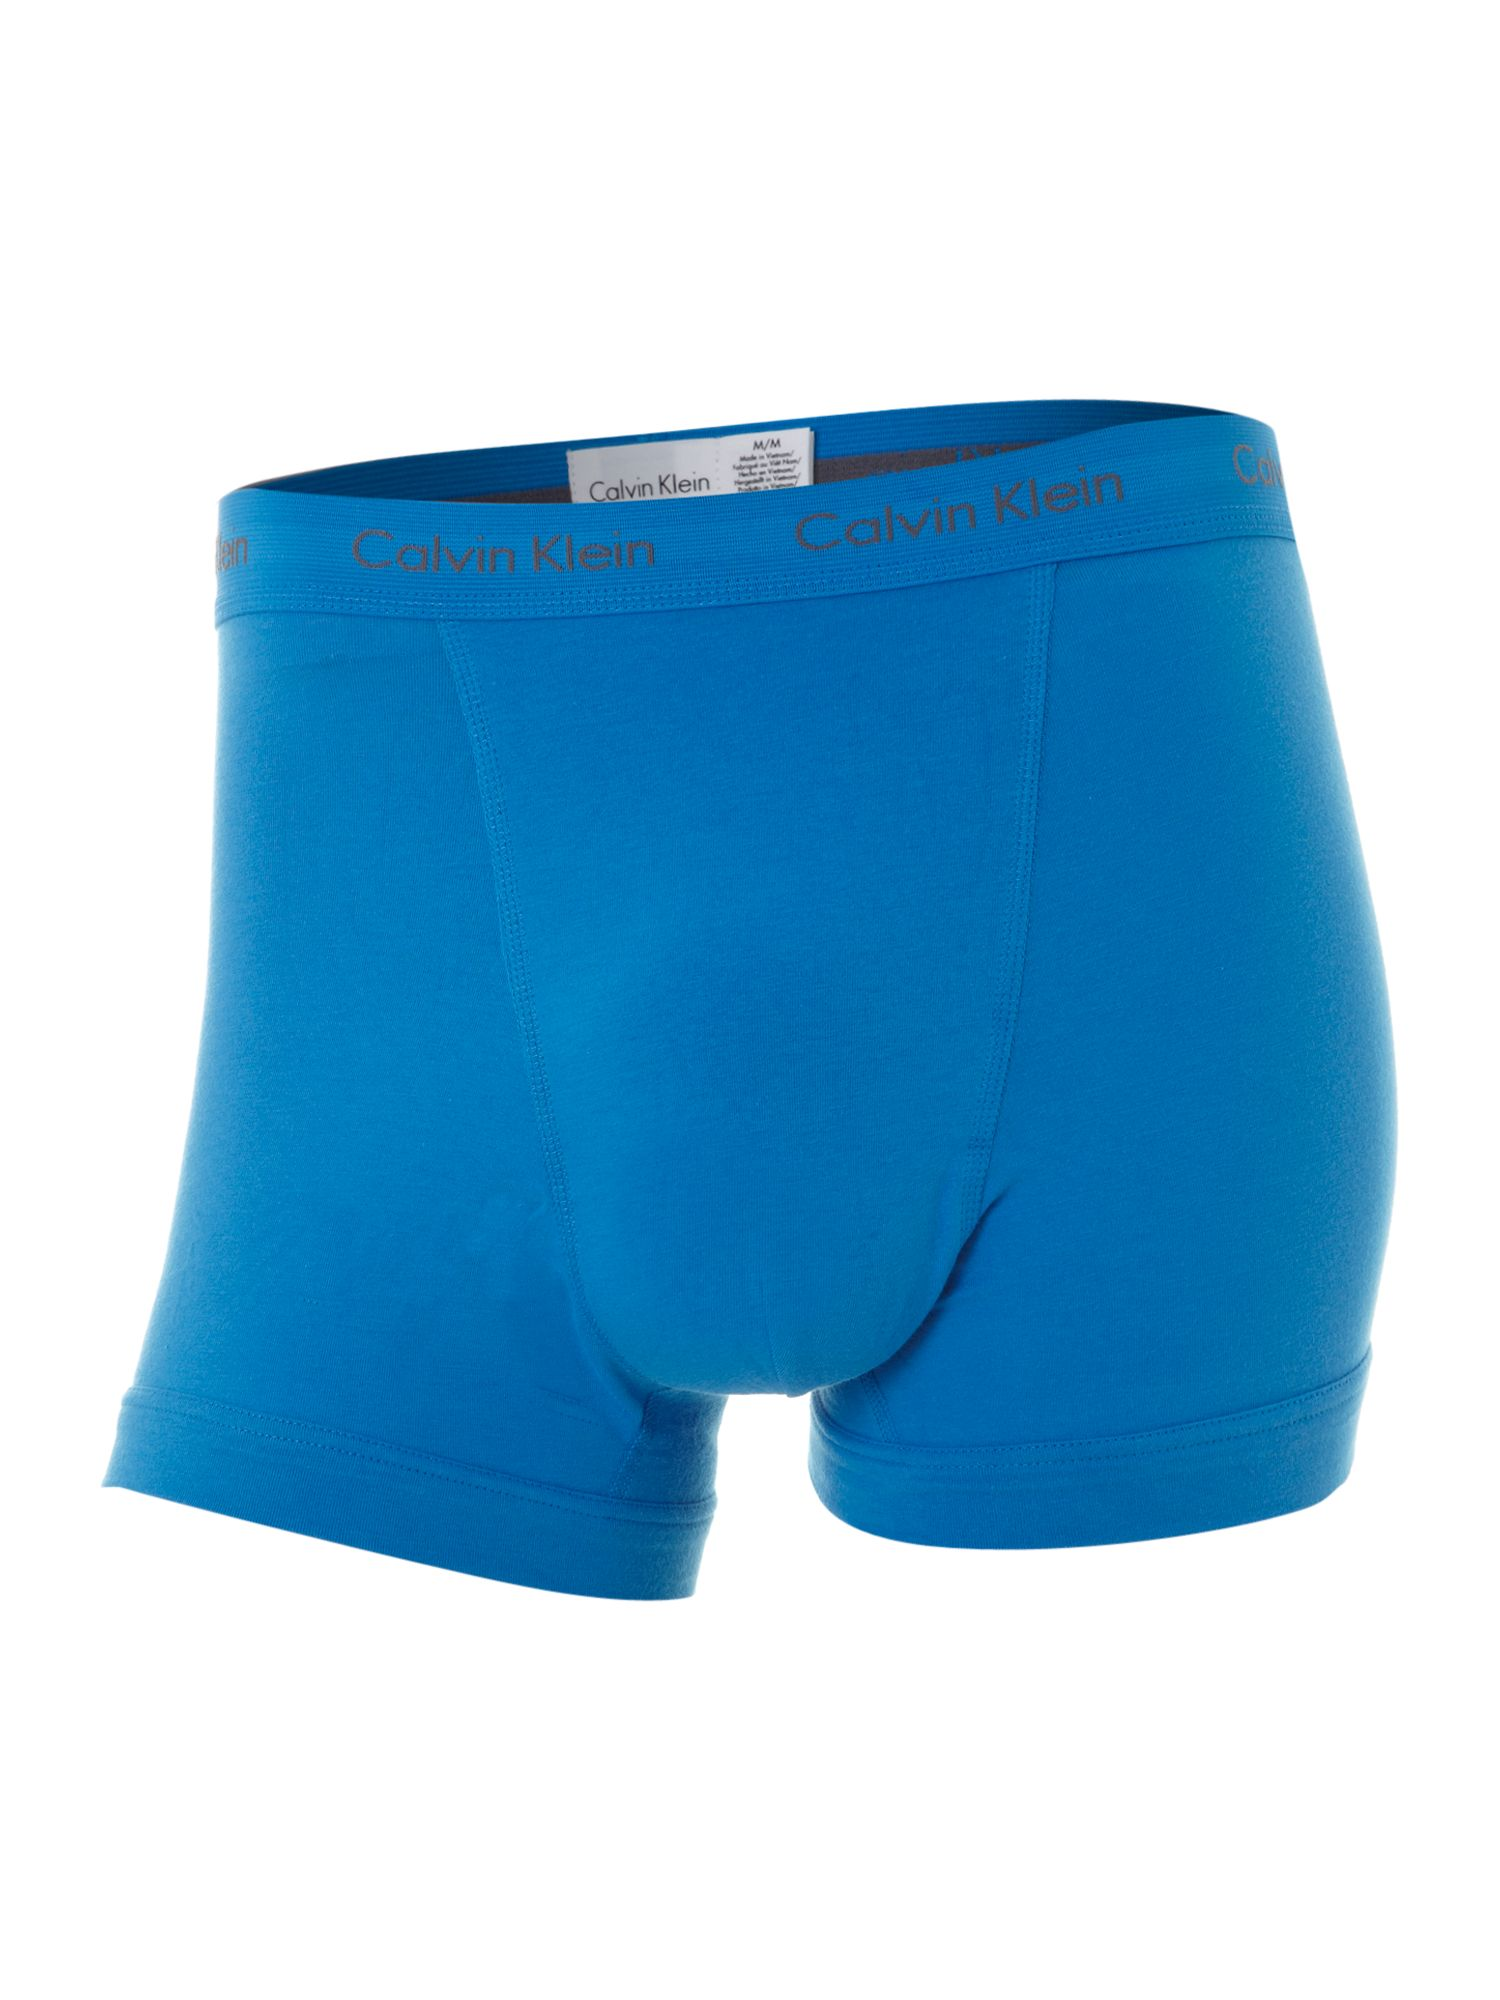 3 pack block colour underwear trunk